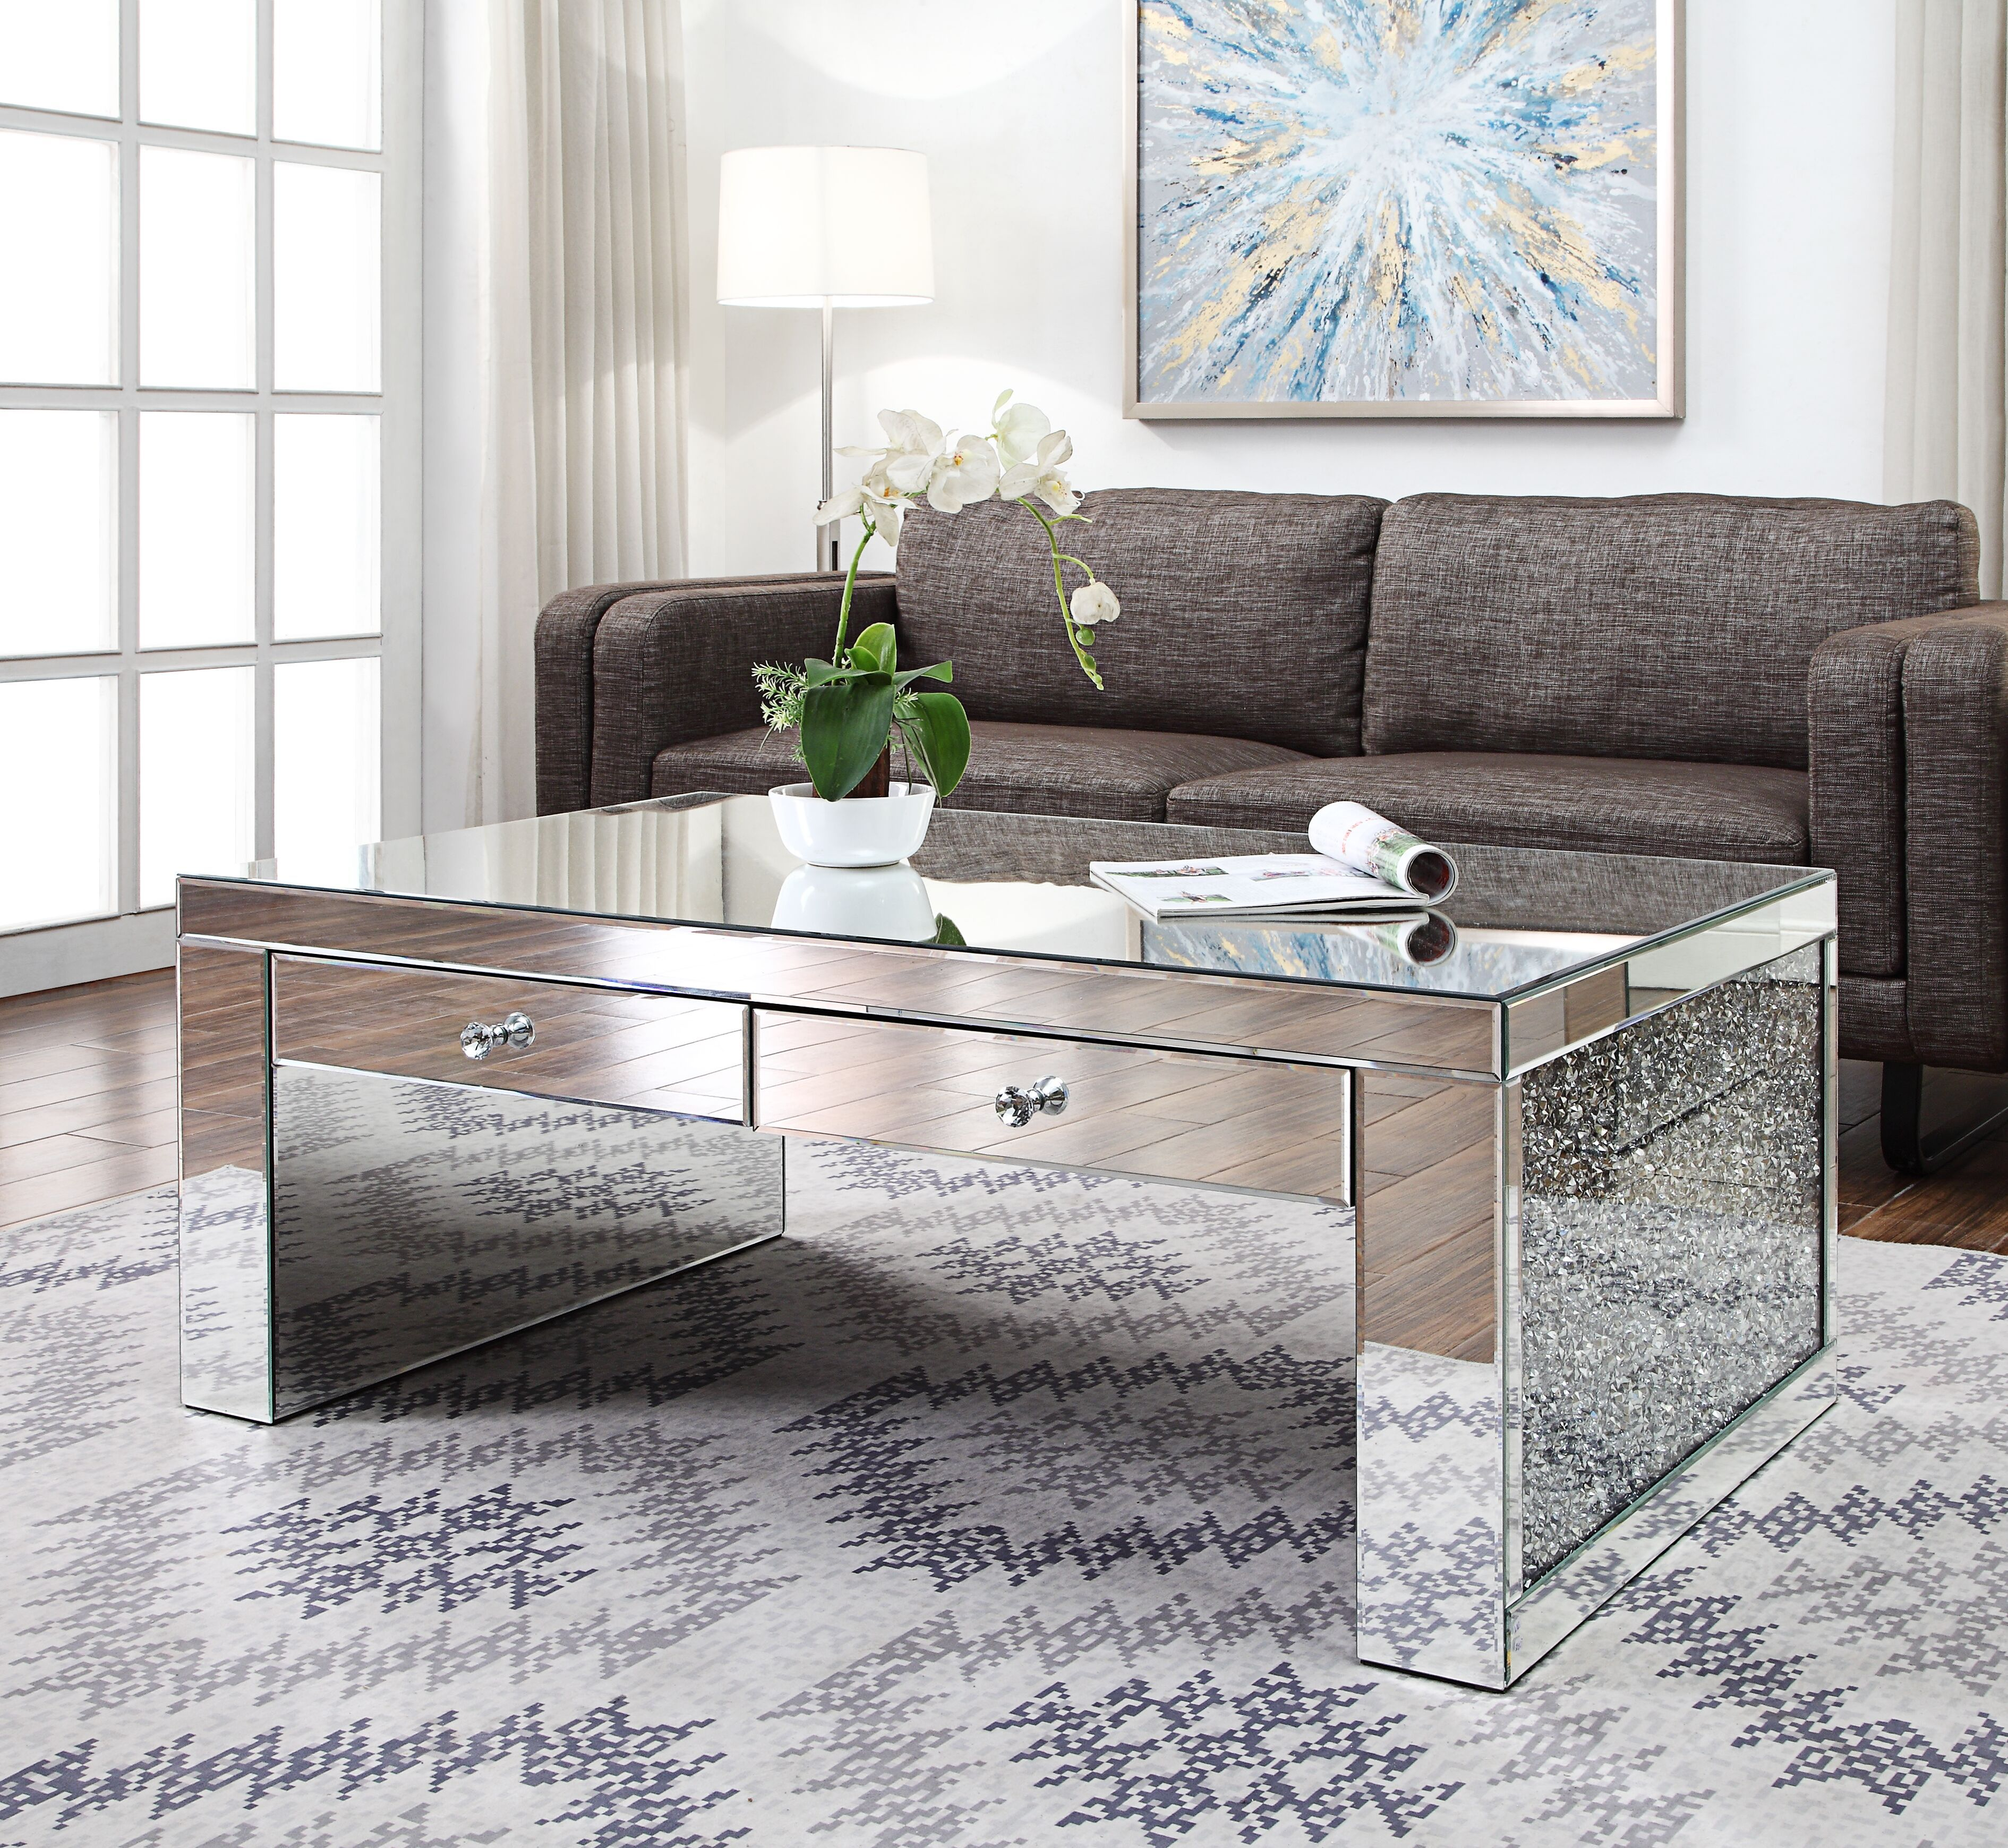 Acme Noralie Coffee Table In Mirrored Faux Diamonds Walmart Com Coffee Table Living Room Table Sets Coffee Table With Storage [ 3479 x 3781 Pixel ]